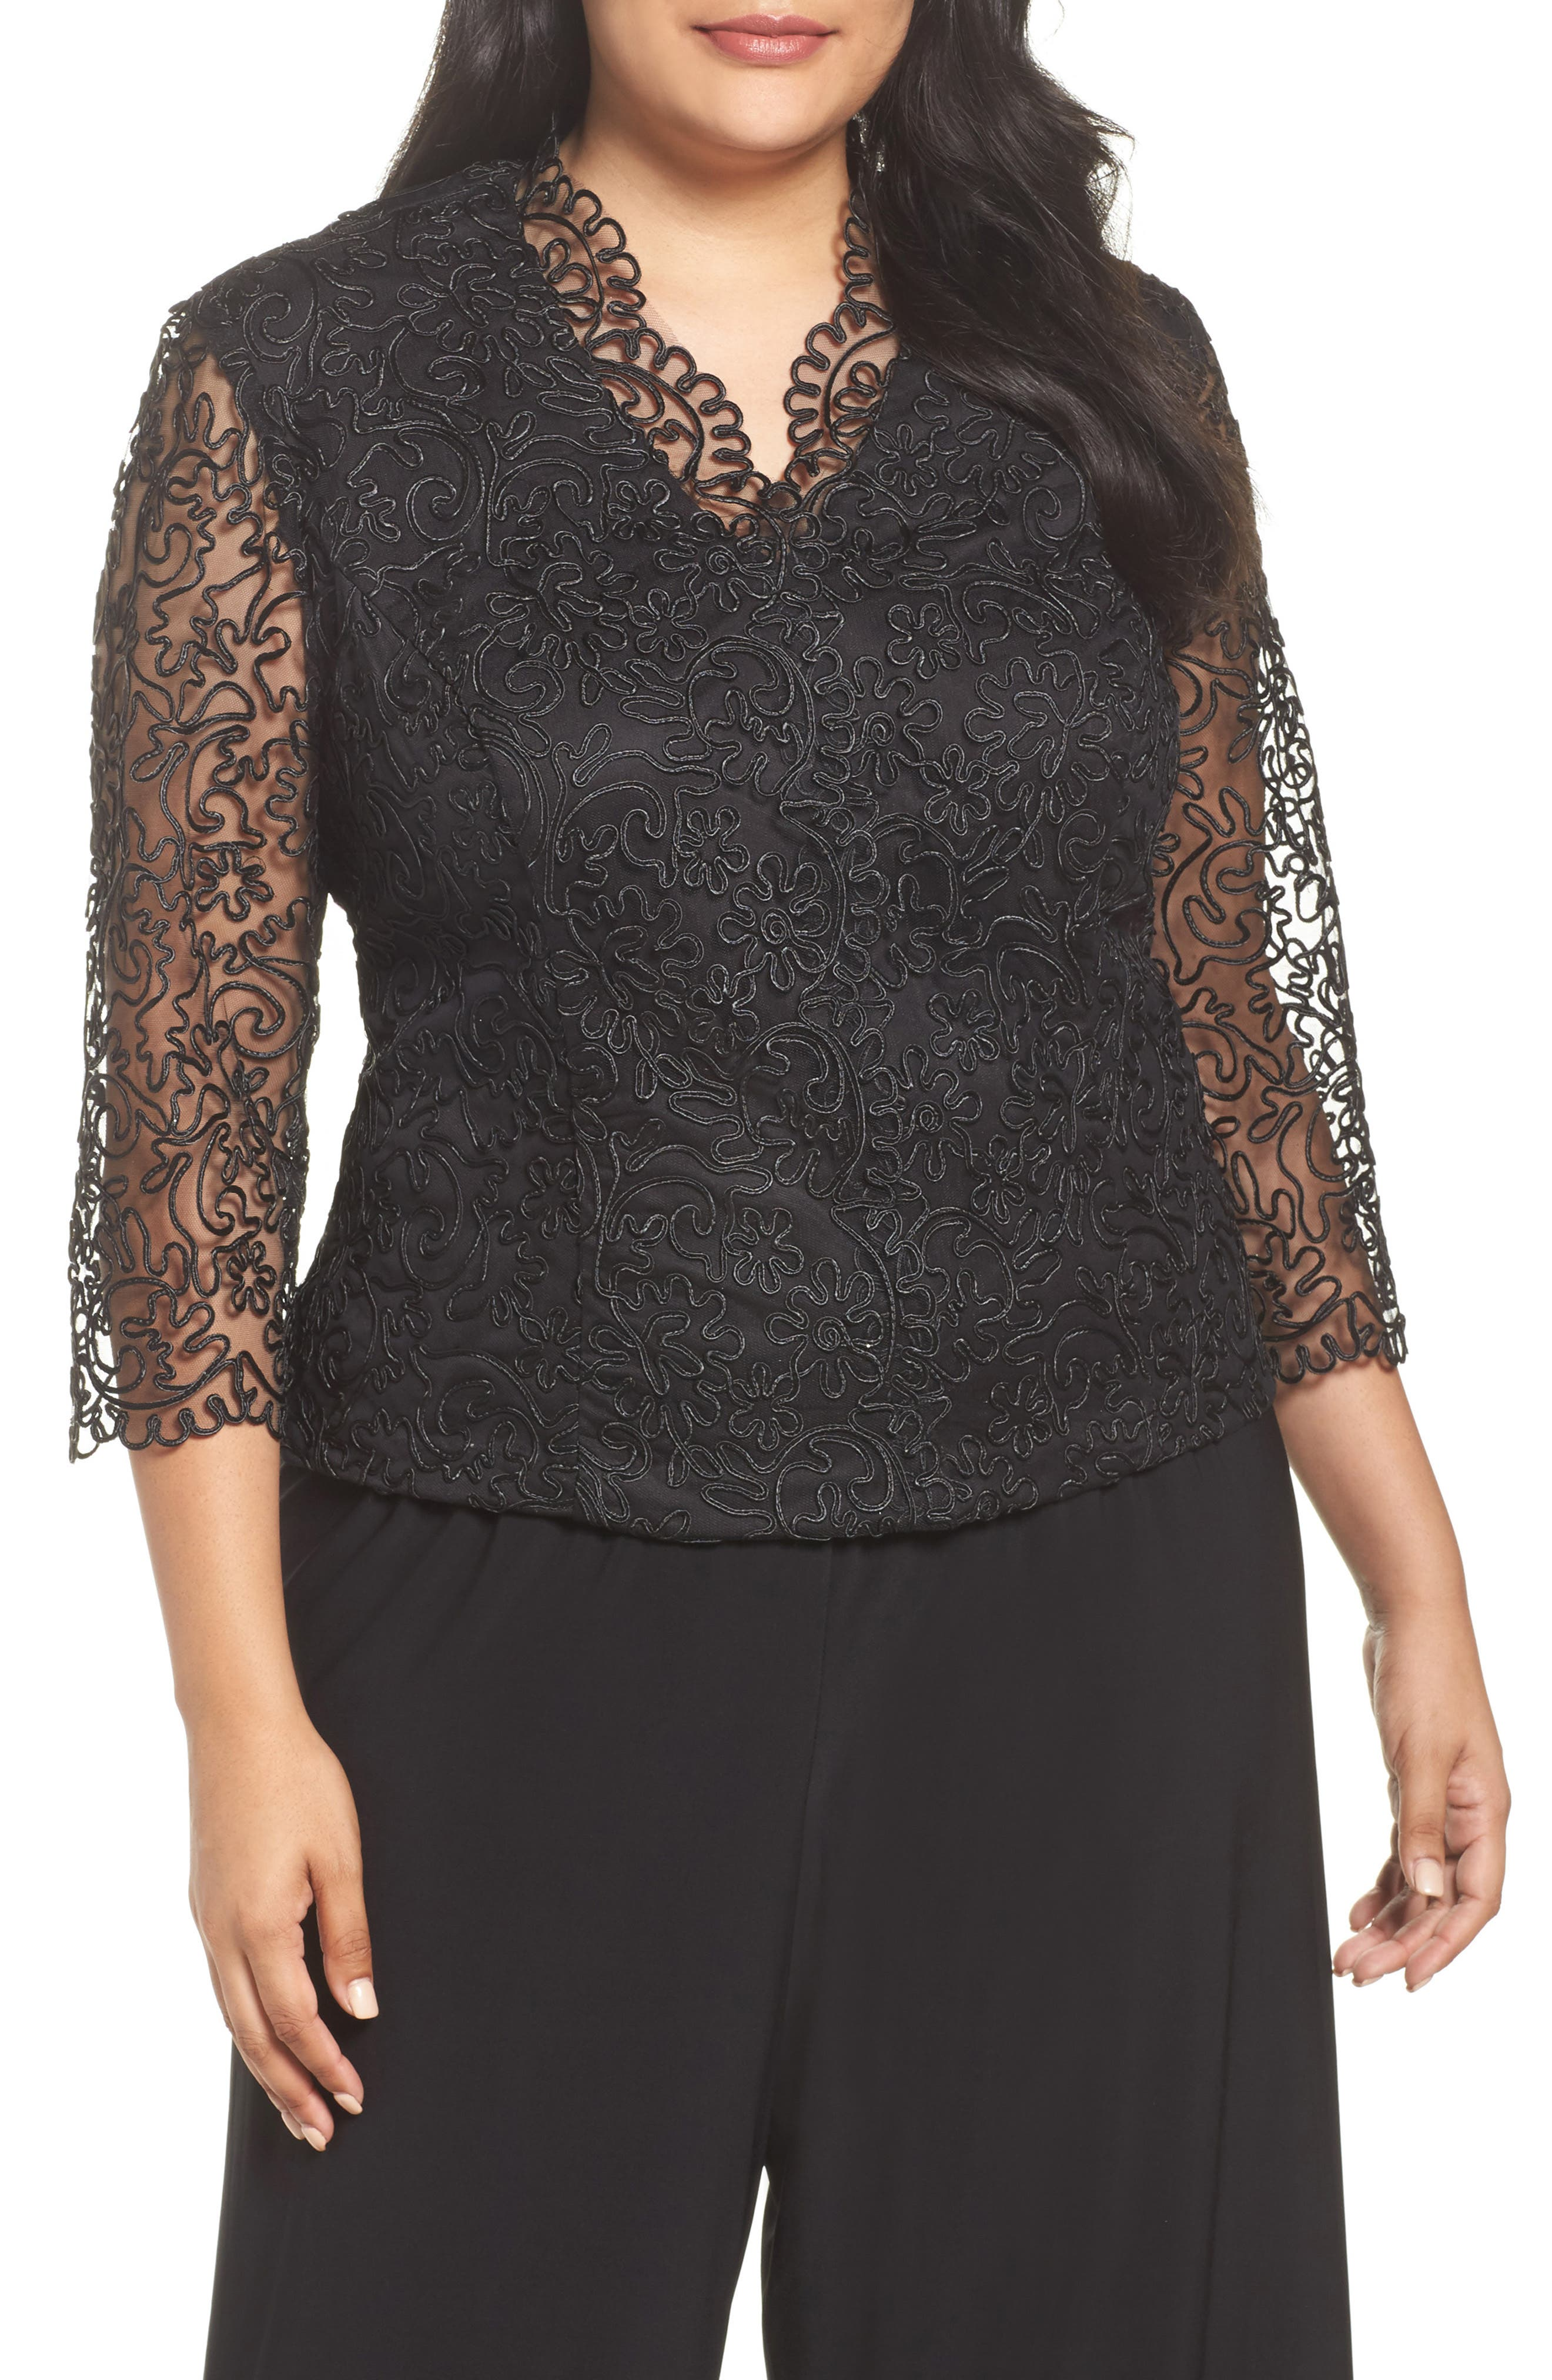 Embroidered Illusion Sleeve Blouse,                         Main,                         color, Black